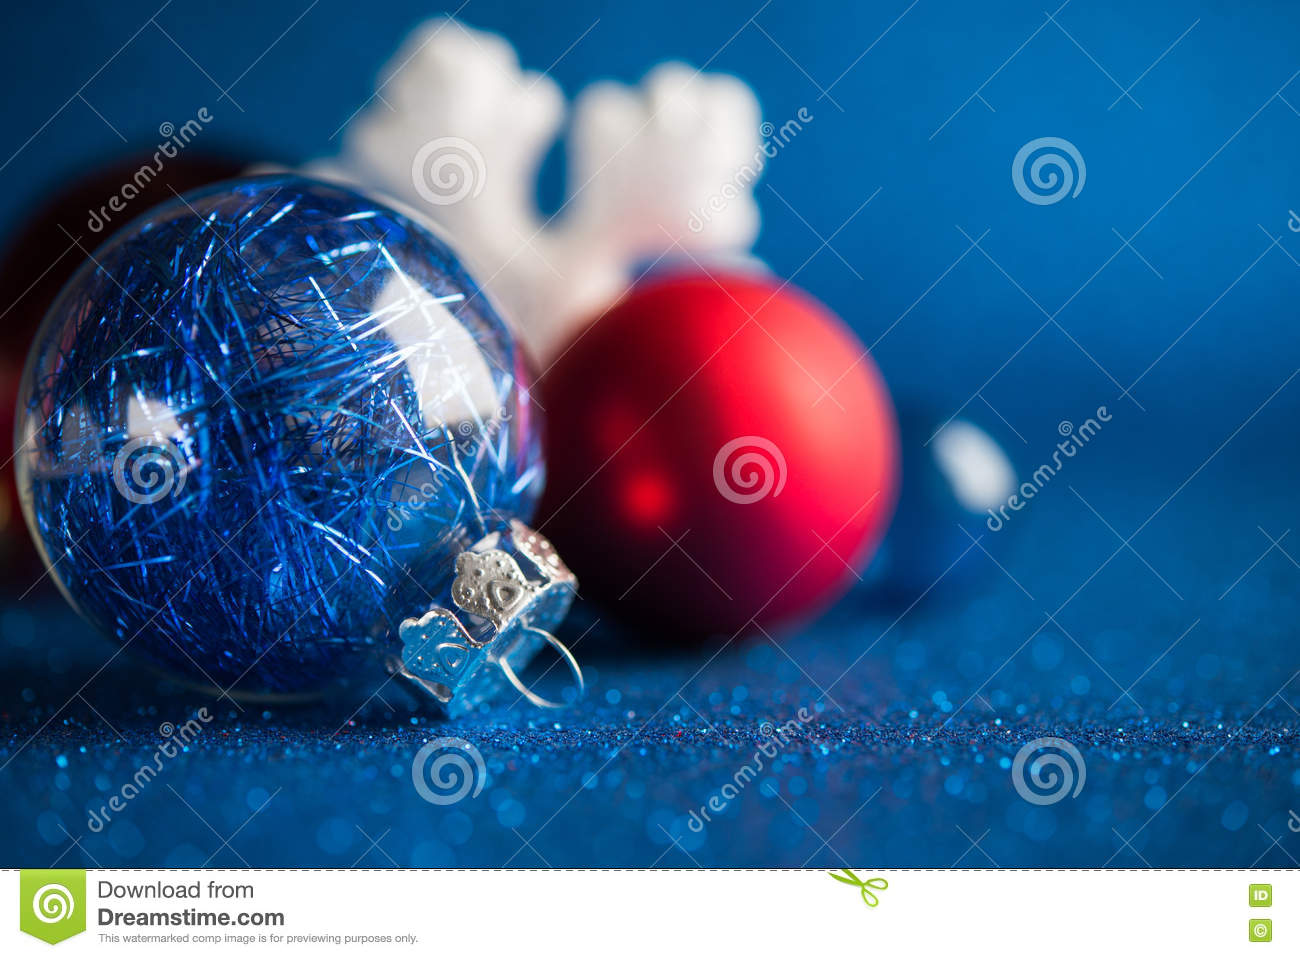 Red white and blue christmas ornaments - White Silver And Red Christmas Ornaments On Dark Blue Glitter Background Stock Image